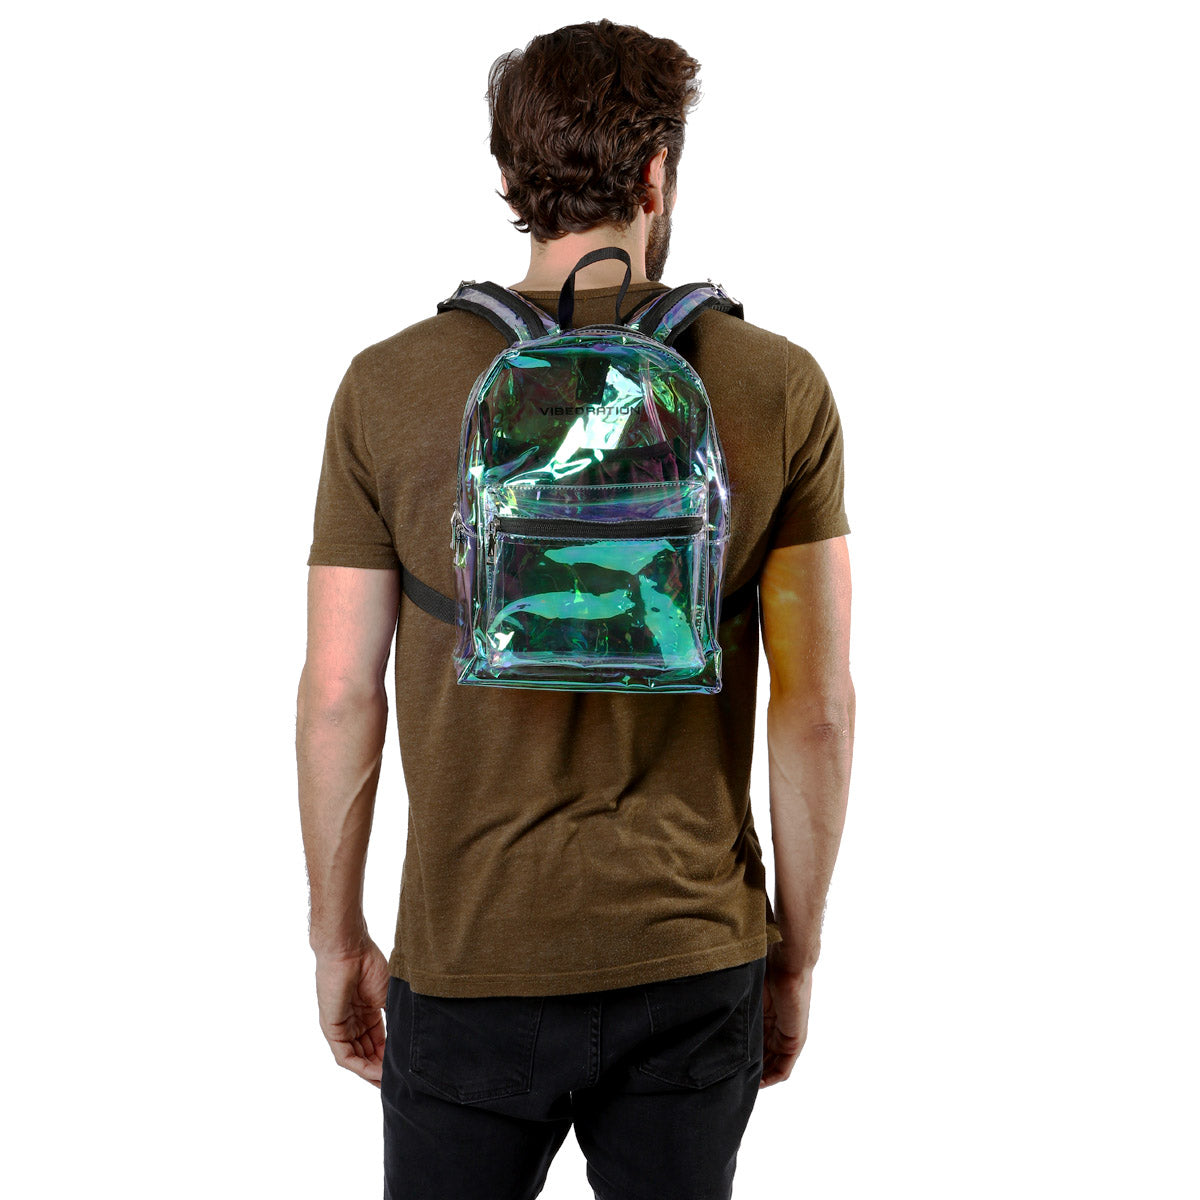 Male wearing Transparent Rave Backpack